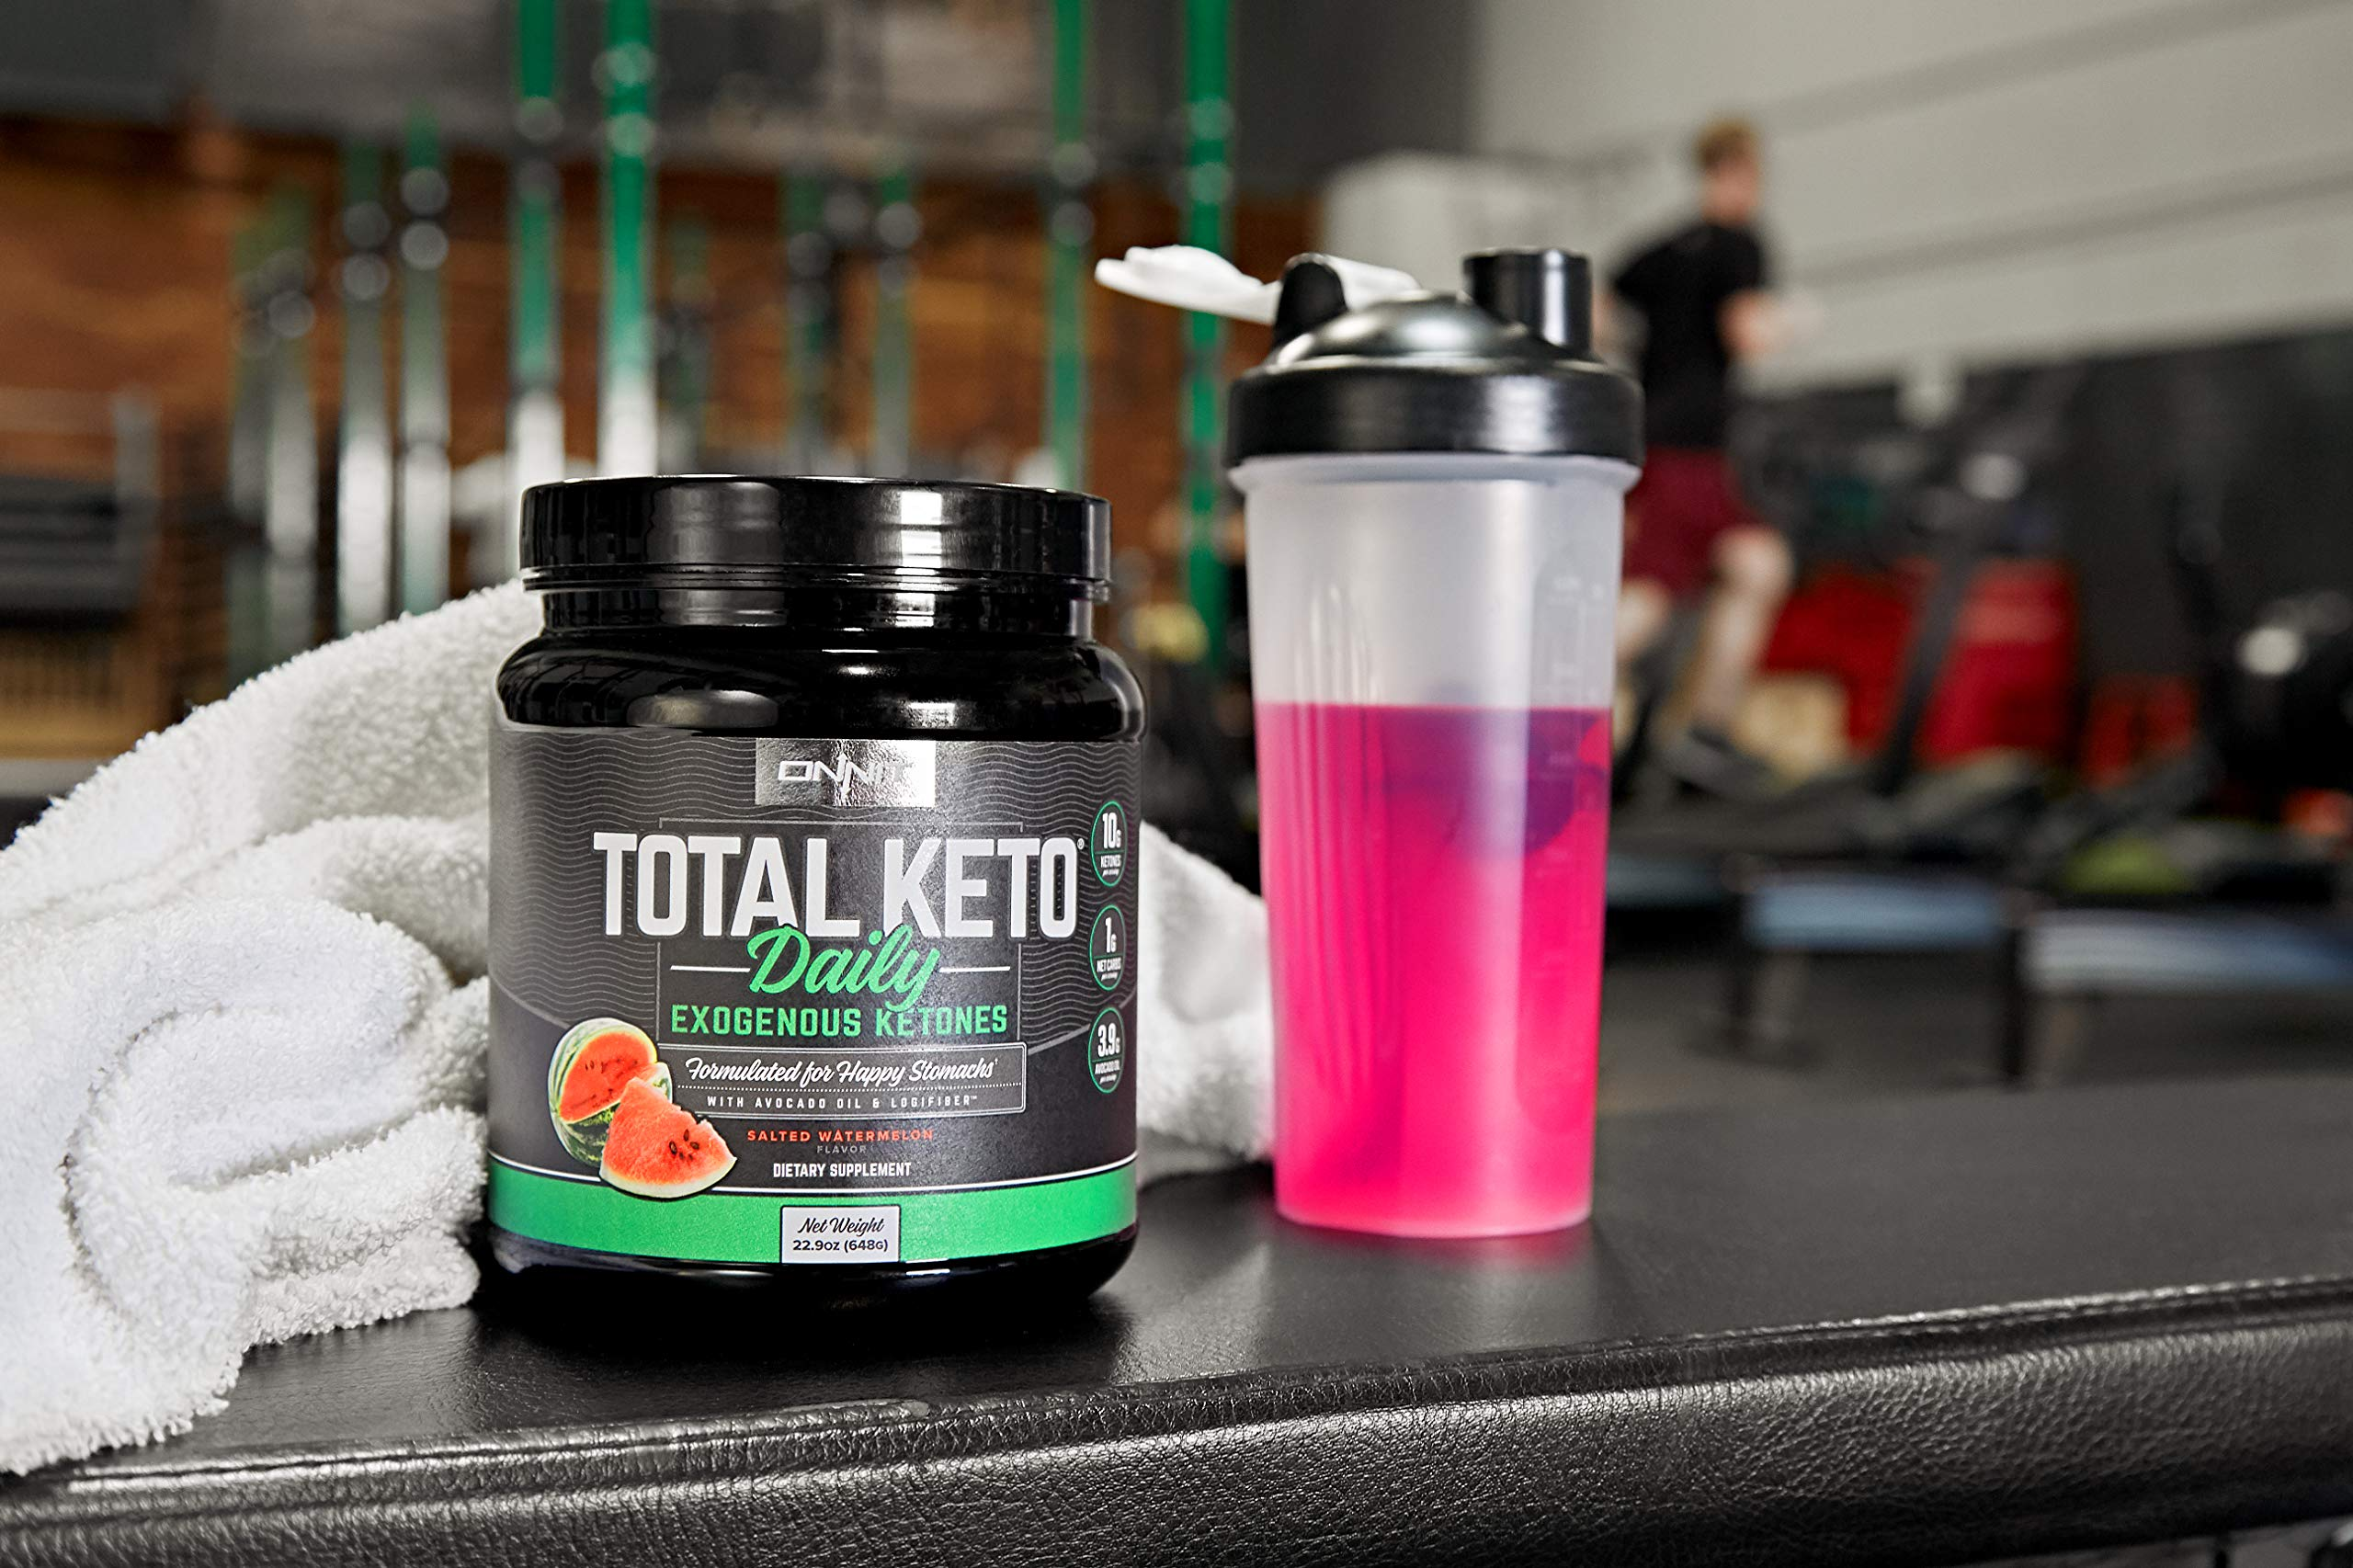 ONNIT Total Keto | Exogenous Ketones Supplement for Low Carb Diet | Premium Value Keto Supplement at 300g Ketone per Tub | Perfect Keto Fuel for Keto Shakes | Watermelon Flavor | 30 Servings by ONNIT (Image #5)